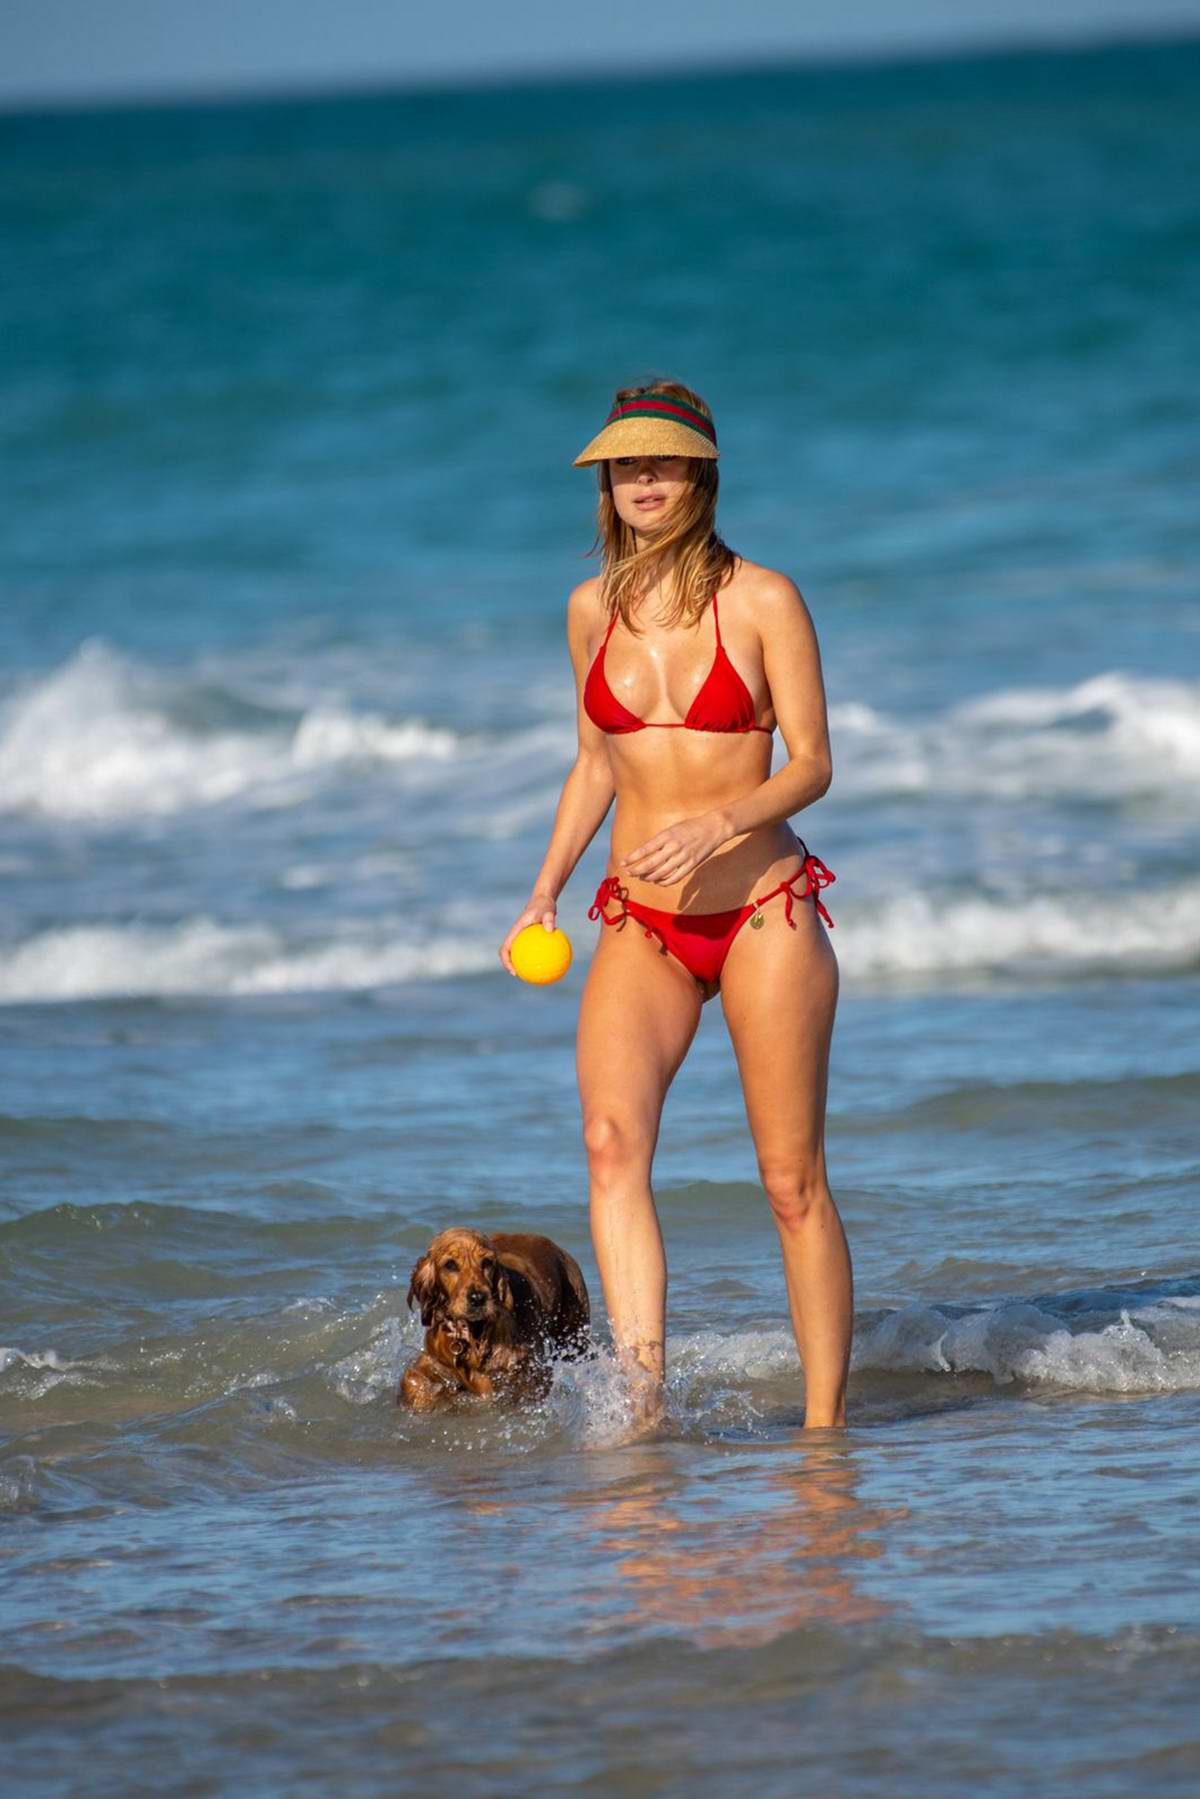 Kimberley Garner stuns in a red bikini while enjoying a day with her dog on the beach in Miami, Florida